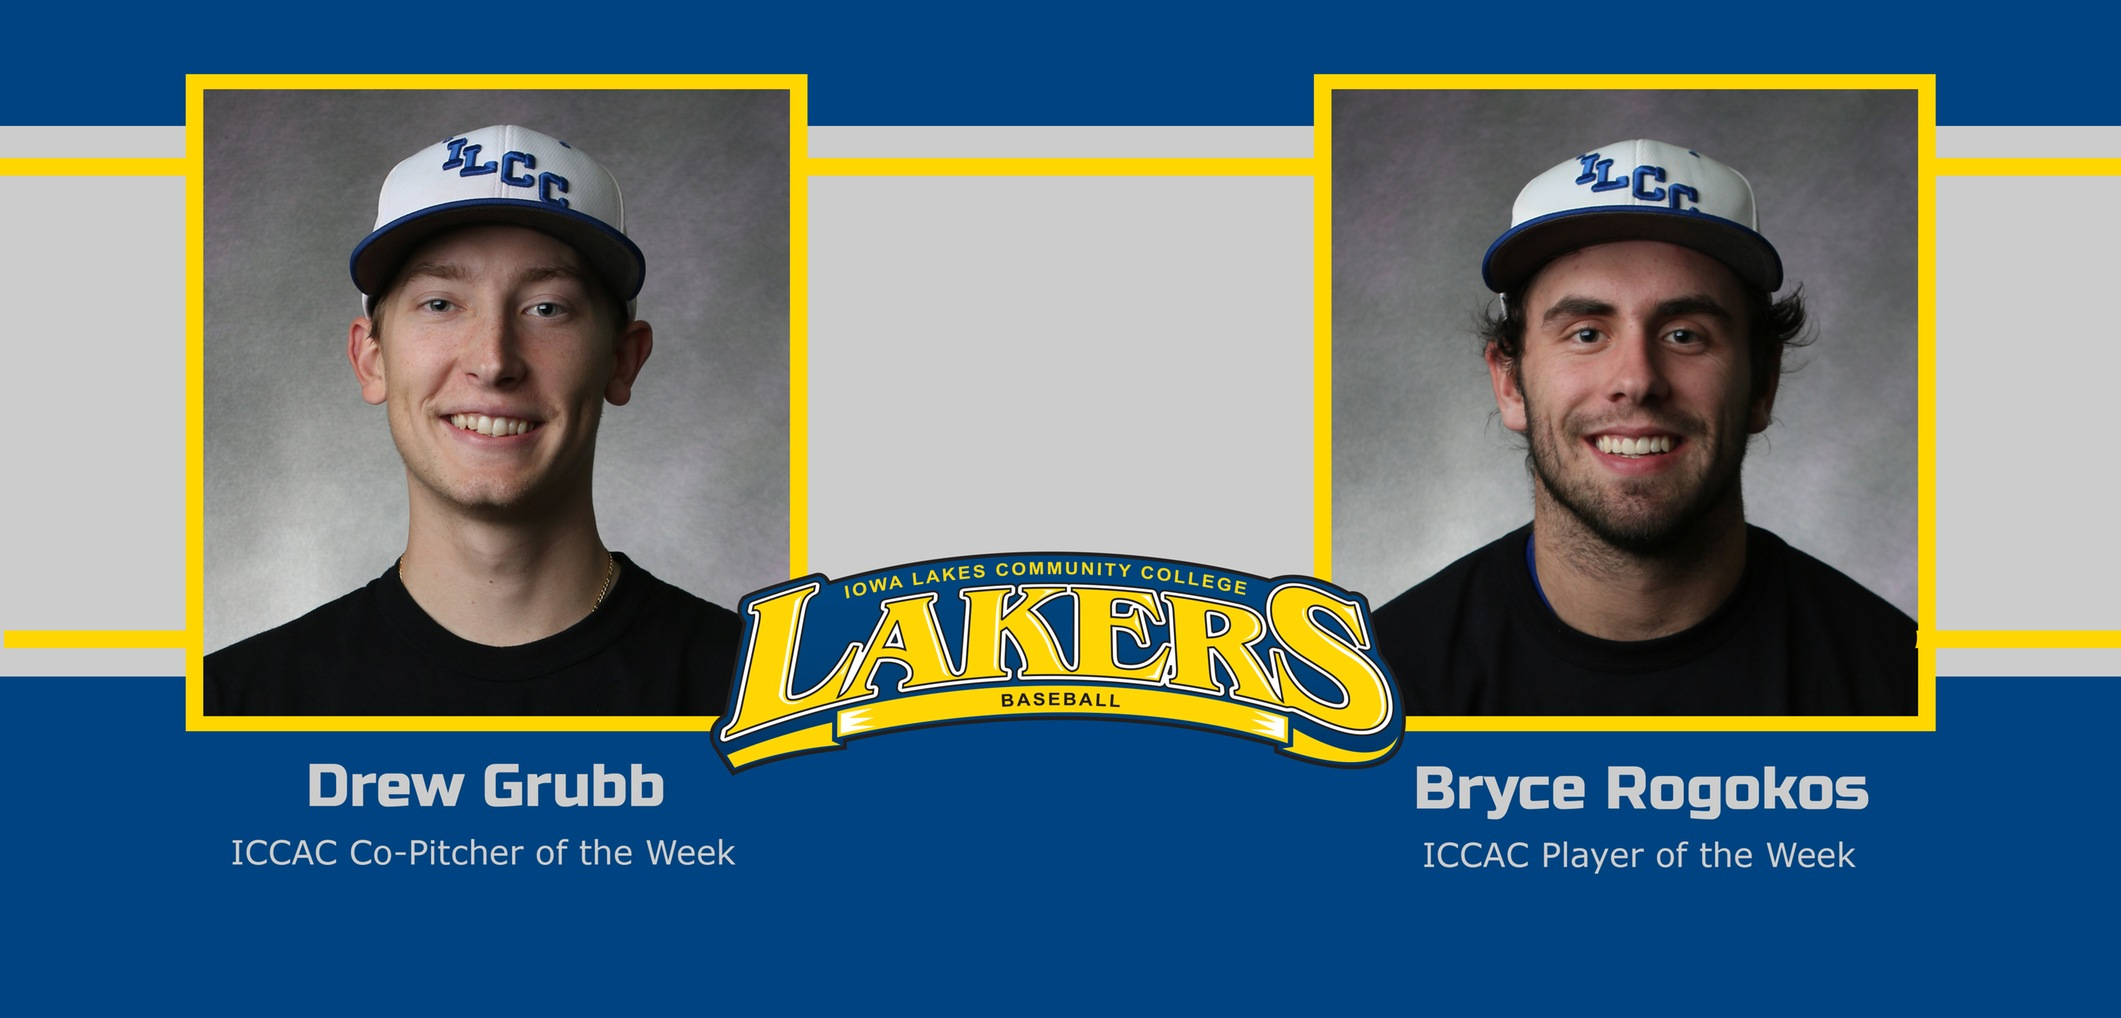 2 Lakers Earn Athlete and Co-Pitcher of the Week